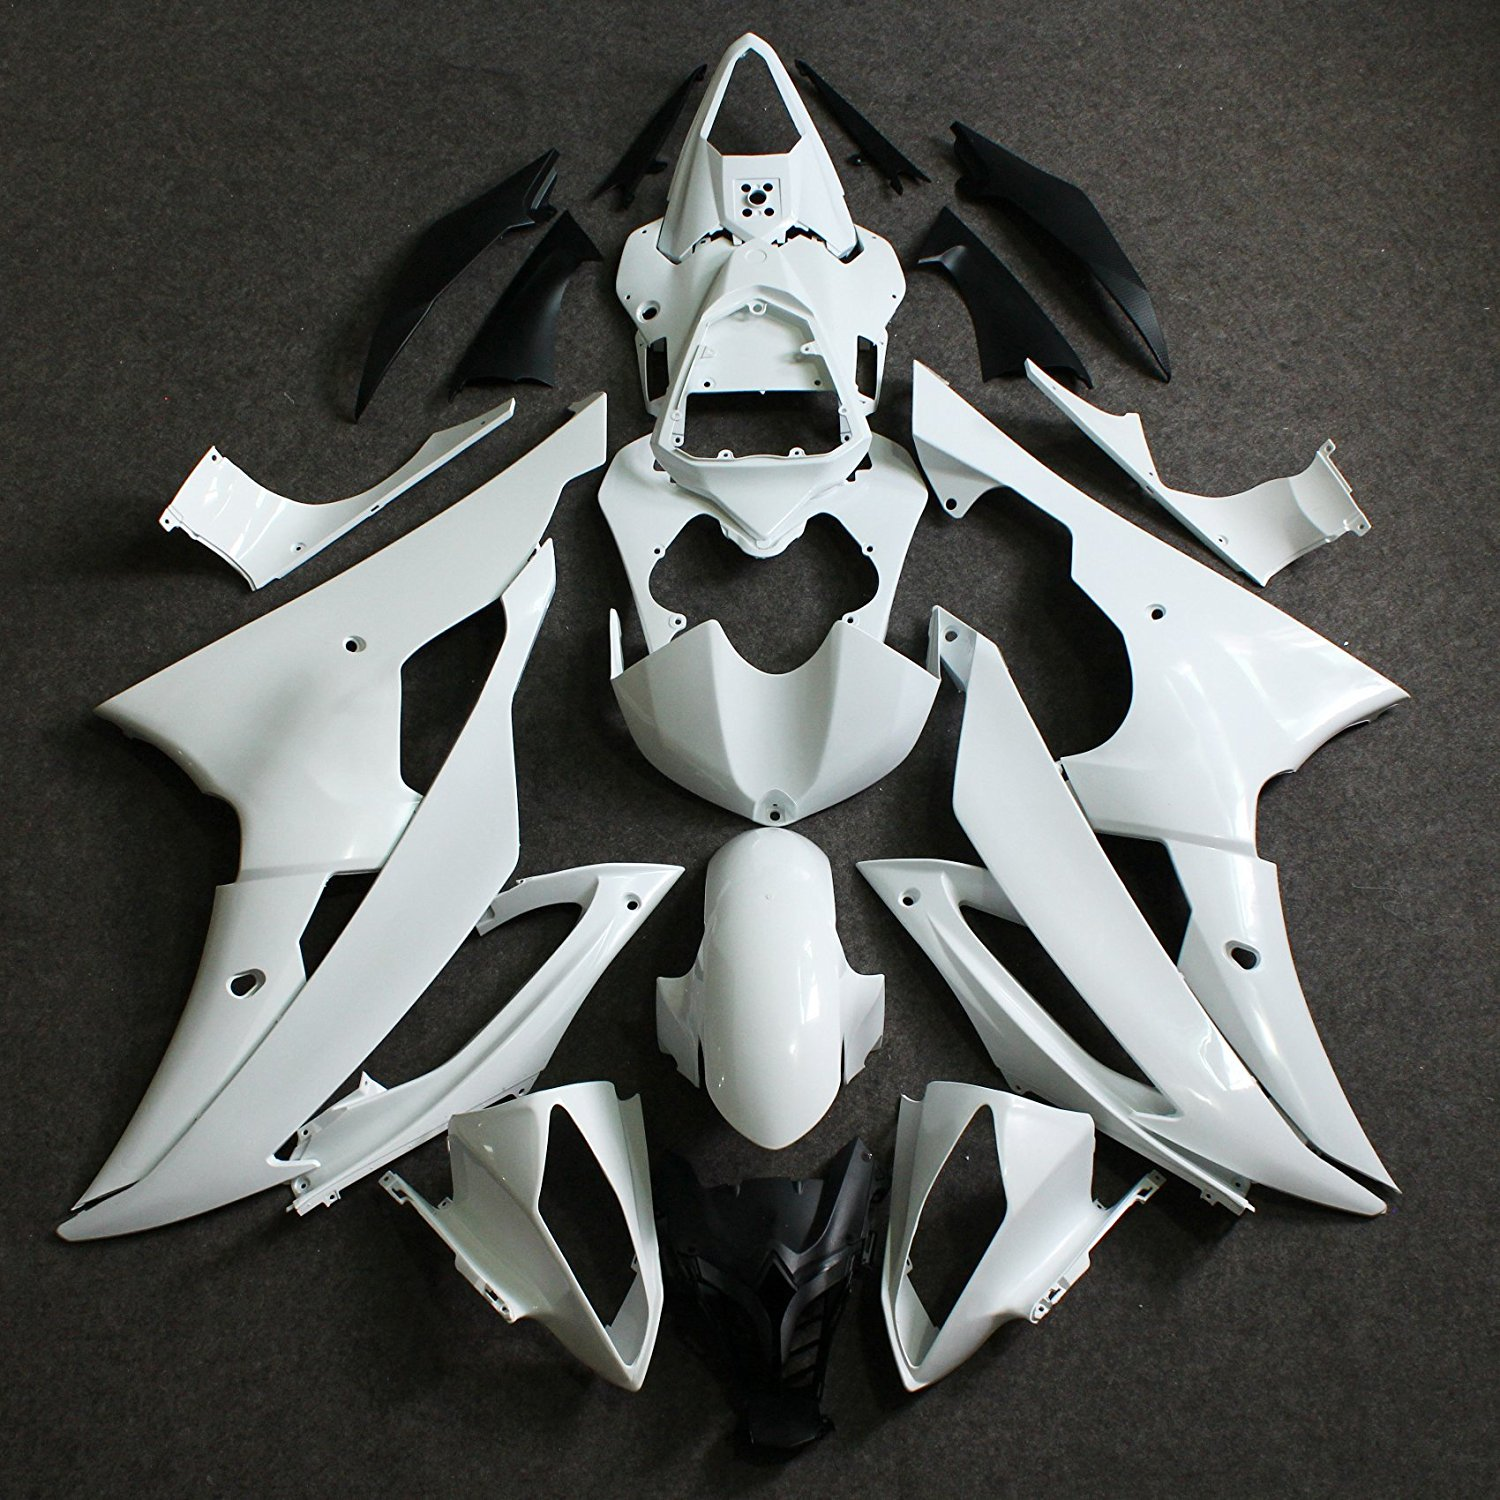 Motorbike Unpainted Injection Fairing Kit For Yamaha YZF R6 YZFR6 YZF-R6 2008 2009 2010 2011 2012 2013 08 - 13 Bodywork Fairings car rear trunk security shield shade cargo cover for nissan qashqai 2008 2009 2010 2011 2012 2013 black beige